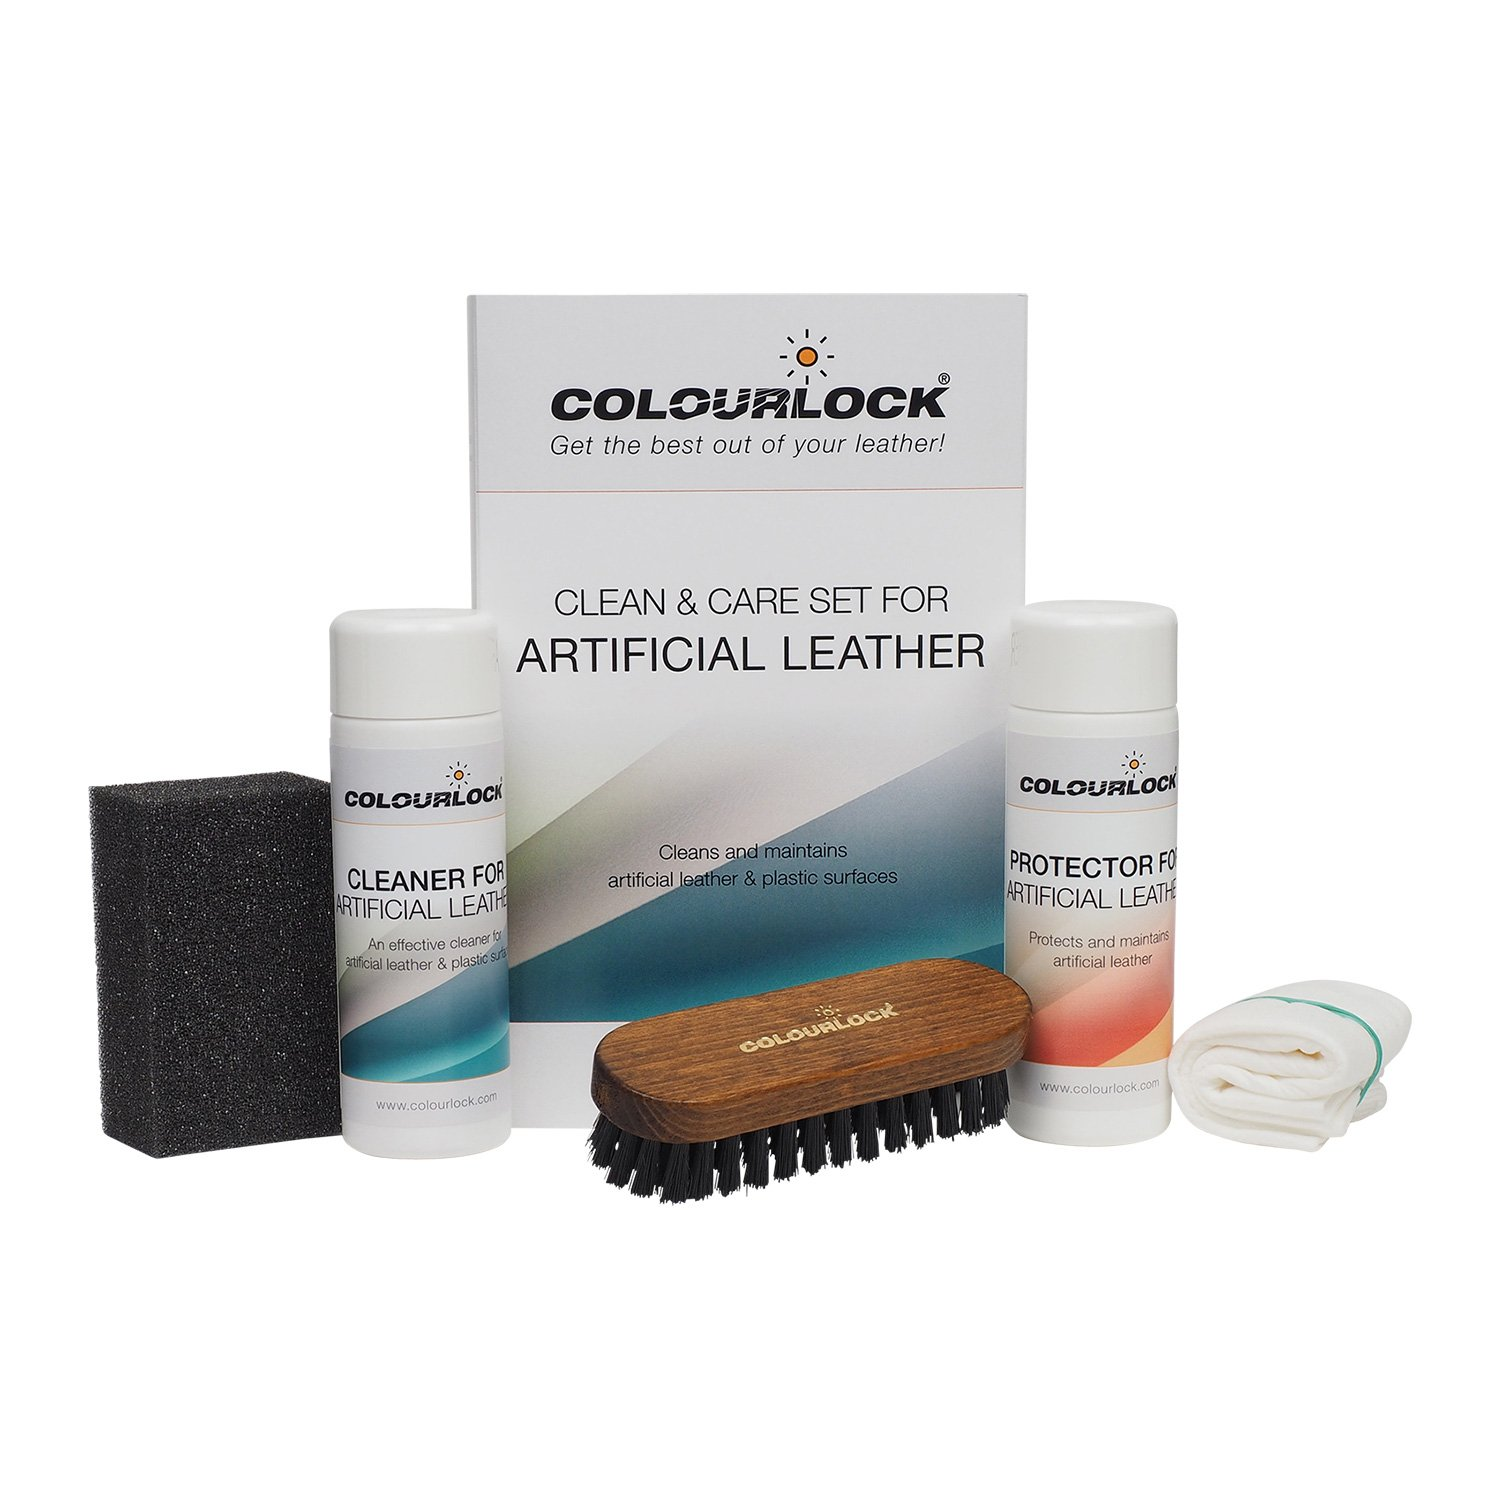 COLOURLOCK Cleaning & Conditioner kit for faux leather - ideal for cleaning & protecting car dash, interior trim and other artificial surfaces with leather graining like leatherette on furniture by Colourlock